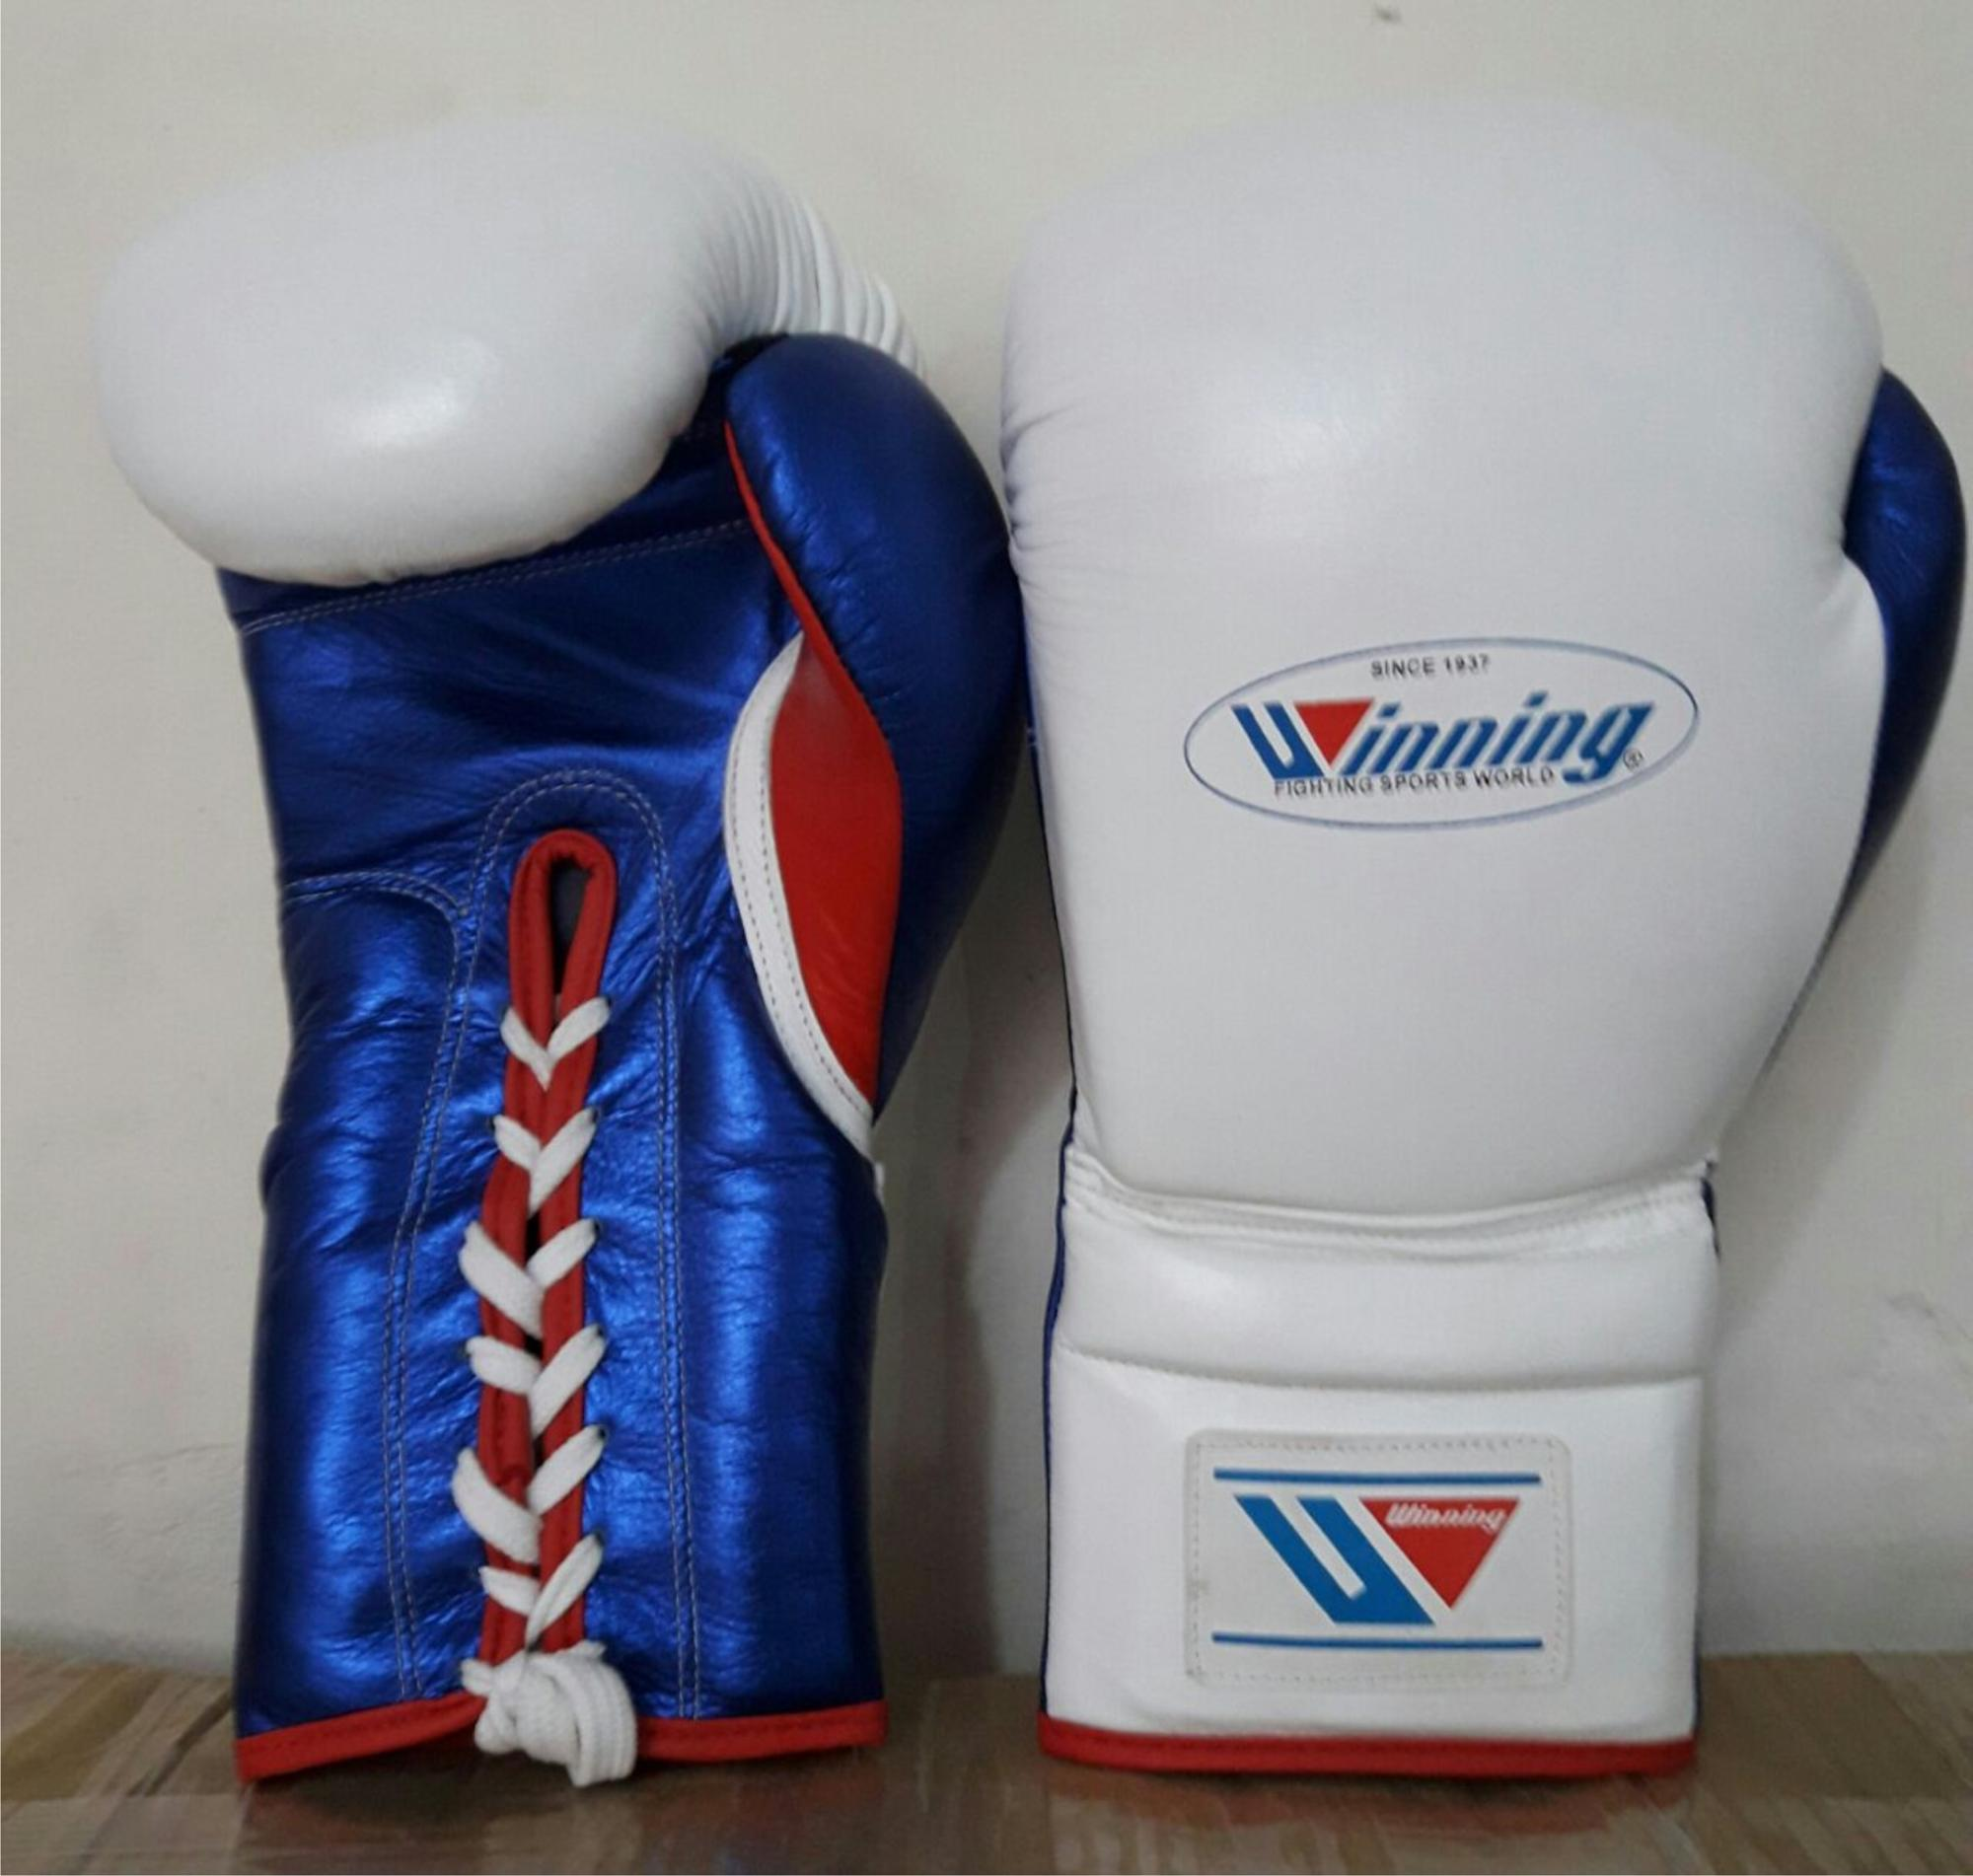 2018 Top Model Boxing Gloves Winning Boxing Gloves